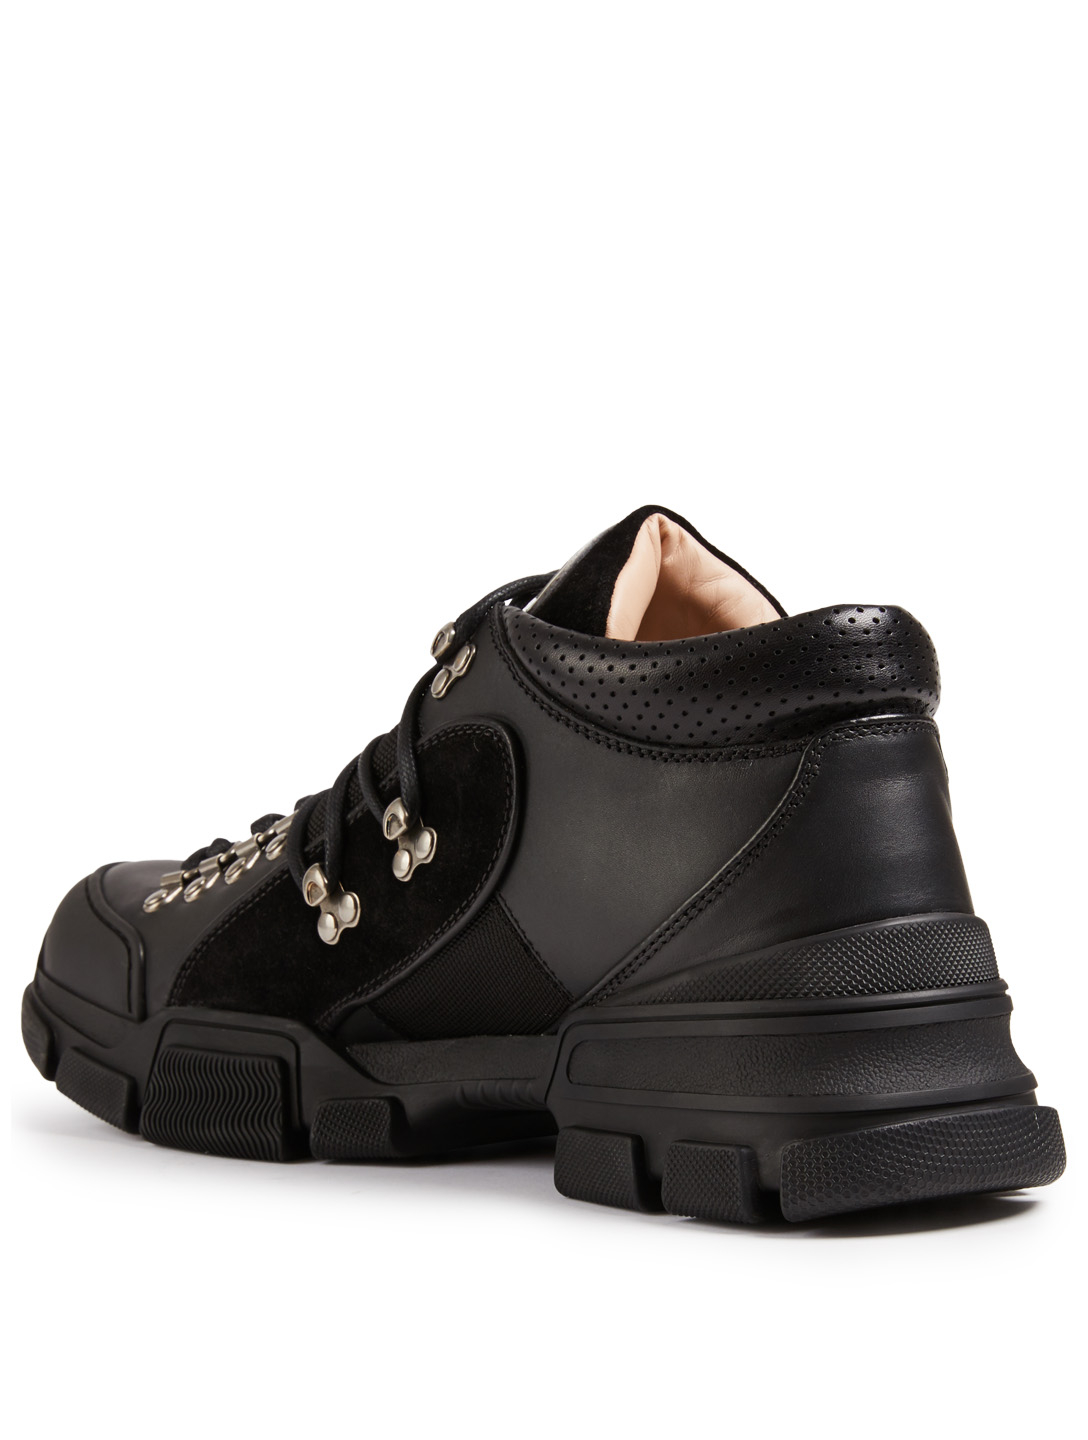 GUCCI Flashtrek Sneakers Men's Black